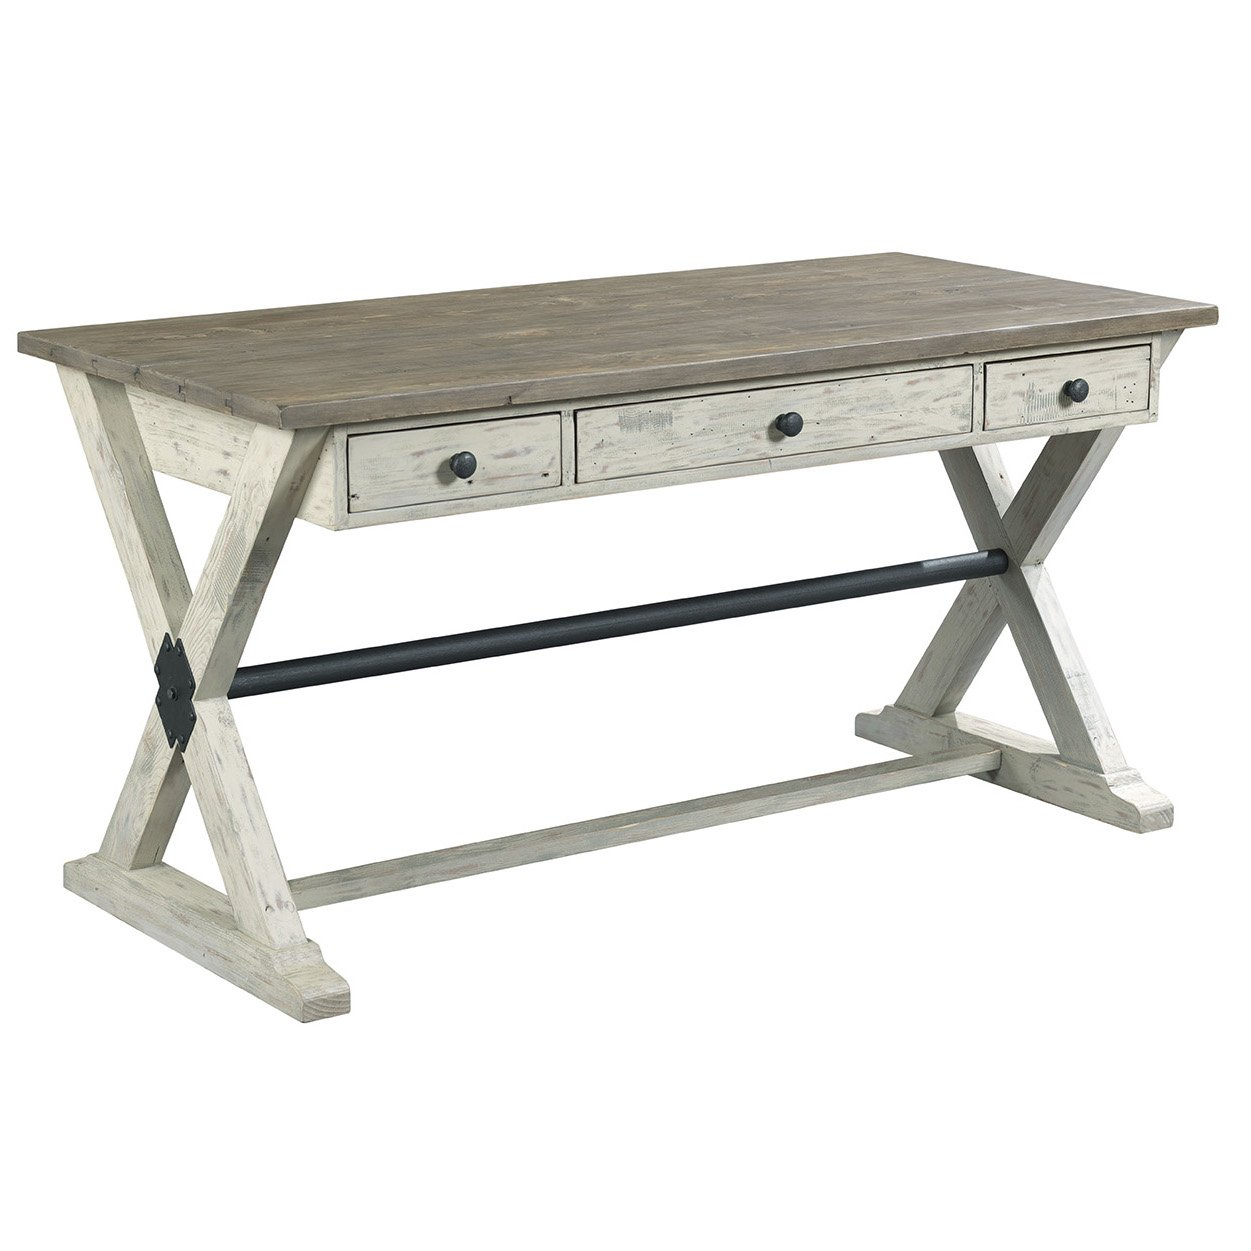 Antique White Contemporary Office Desk - Reclamation Place | RC Willey  Furniture Store - Antique White Contemporary Office Desk - Reclamation Place RC